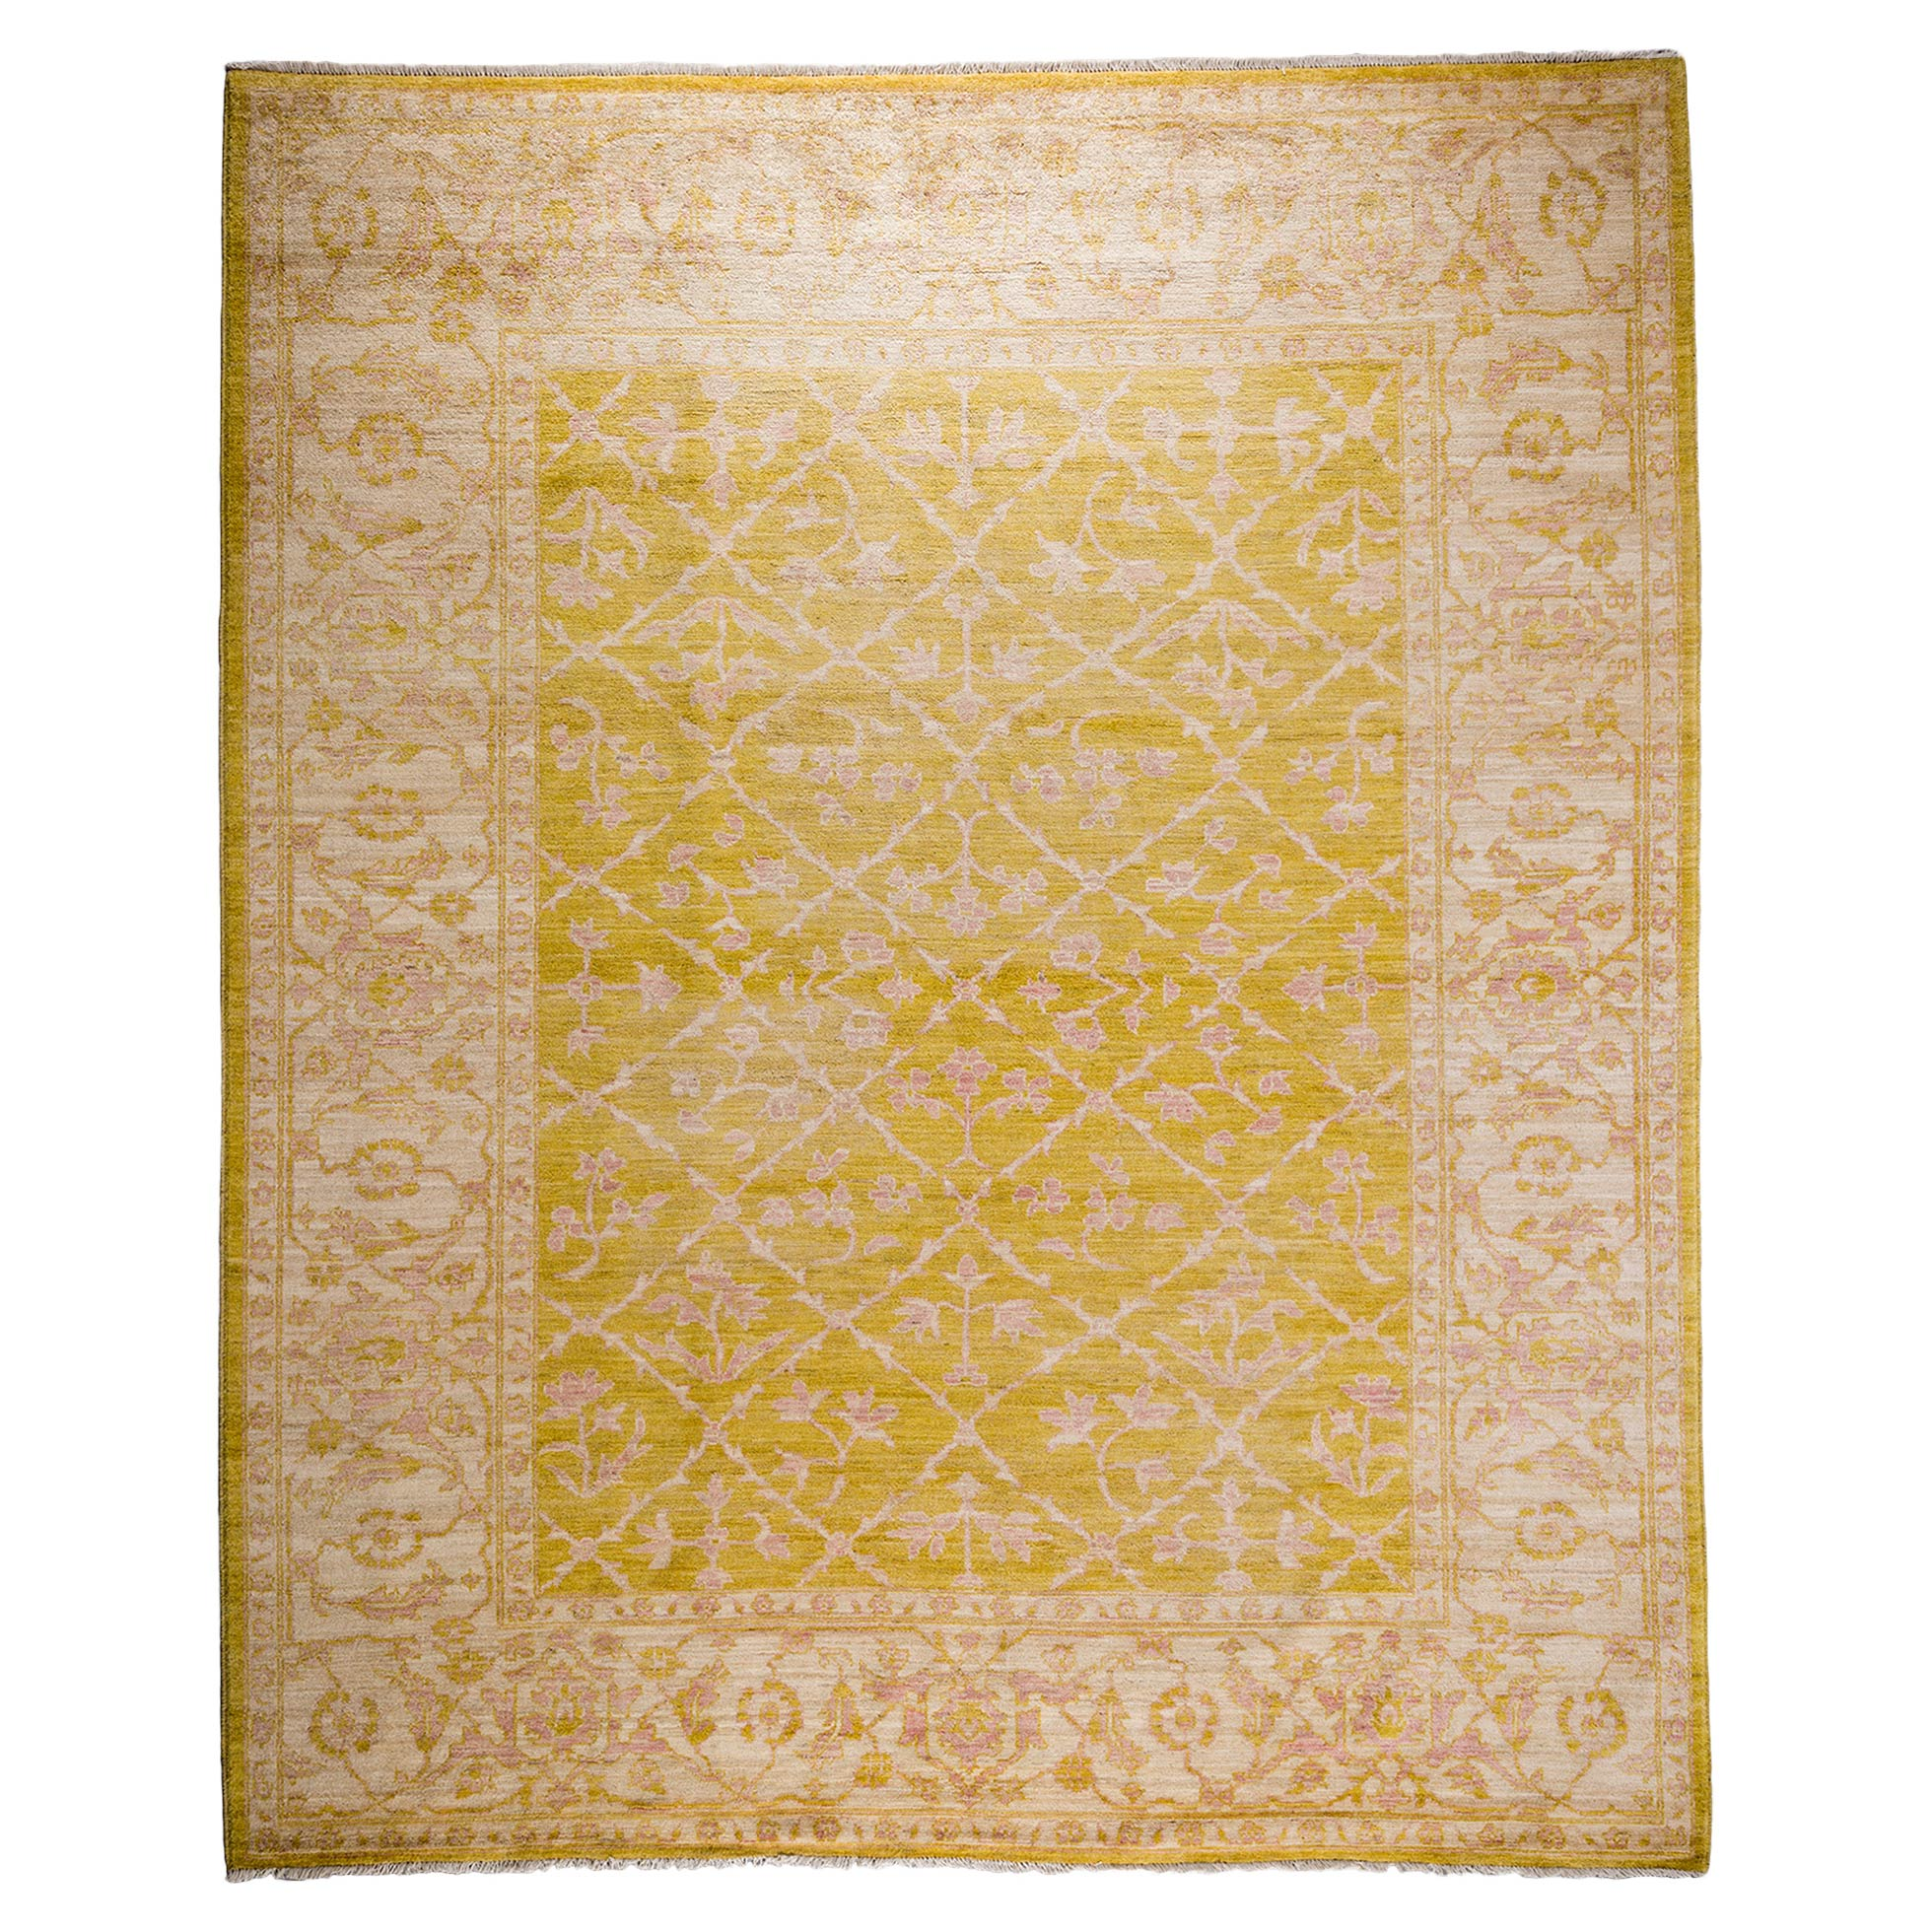 Jonquil French Yellow Oushak Wool Rug - 8'3 x 10'1